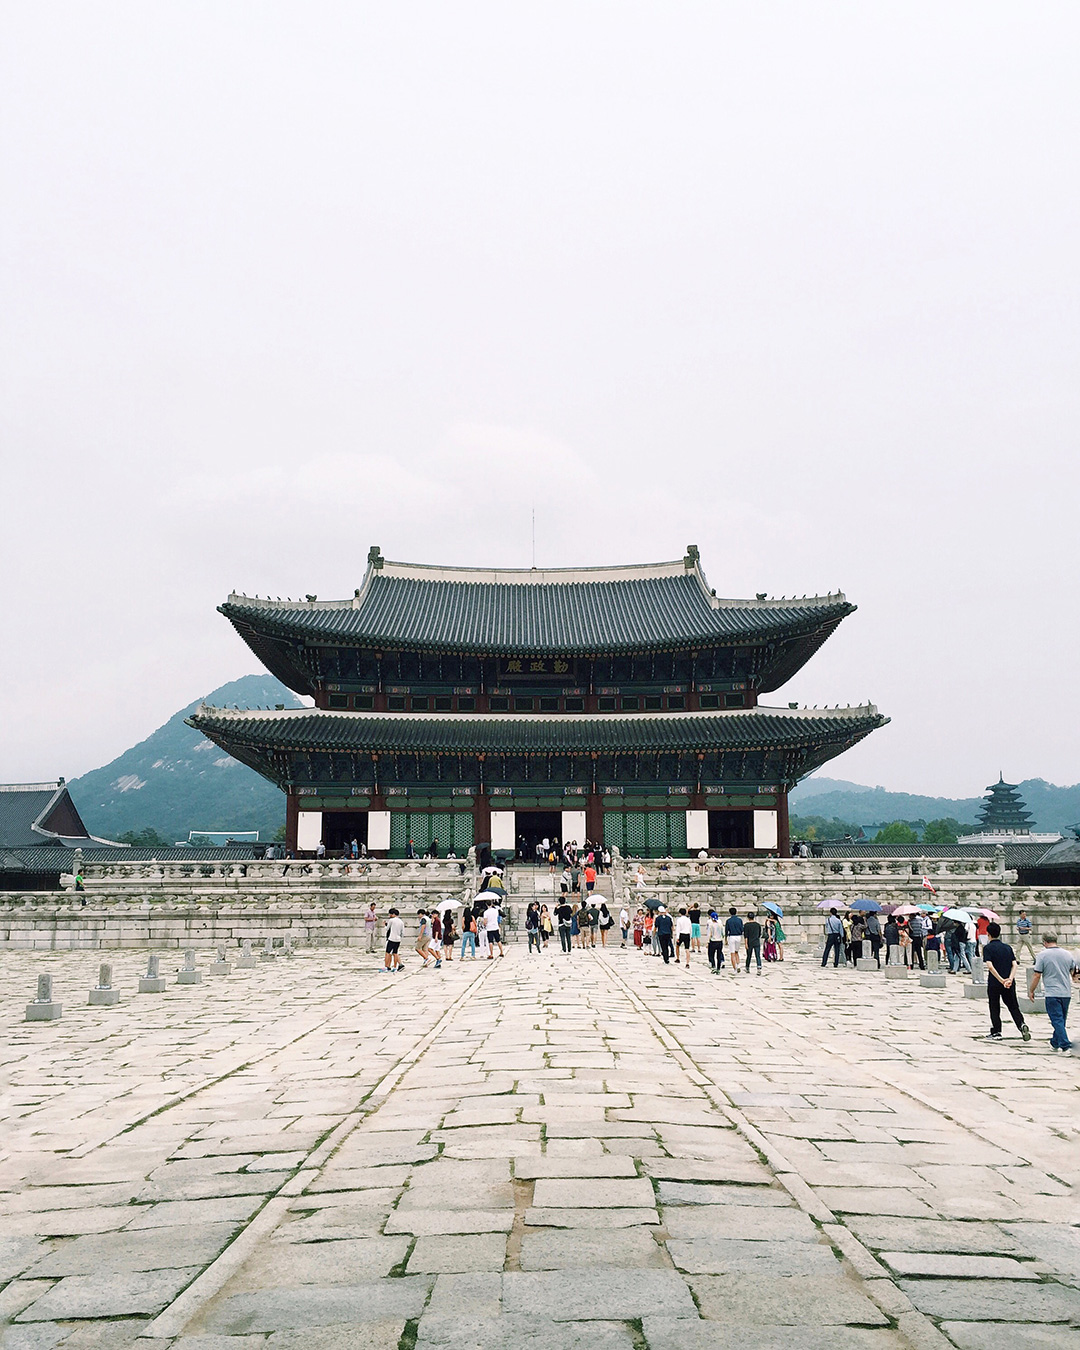 Geunjeongjun is the main throne hall where state affairs were held. The raised portion of the cobblestone path in the center is exactly as wide as the king's palanquin that carried him around as he was not allowed to walk on common ground by law.